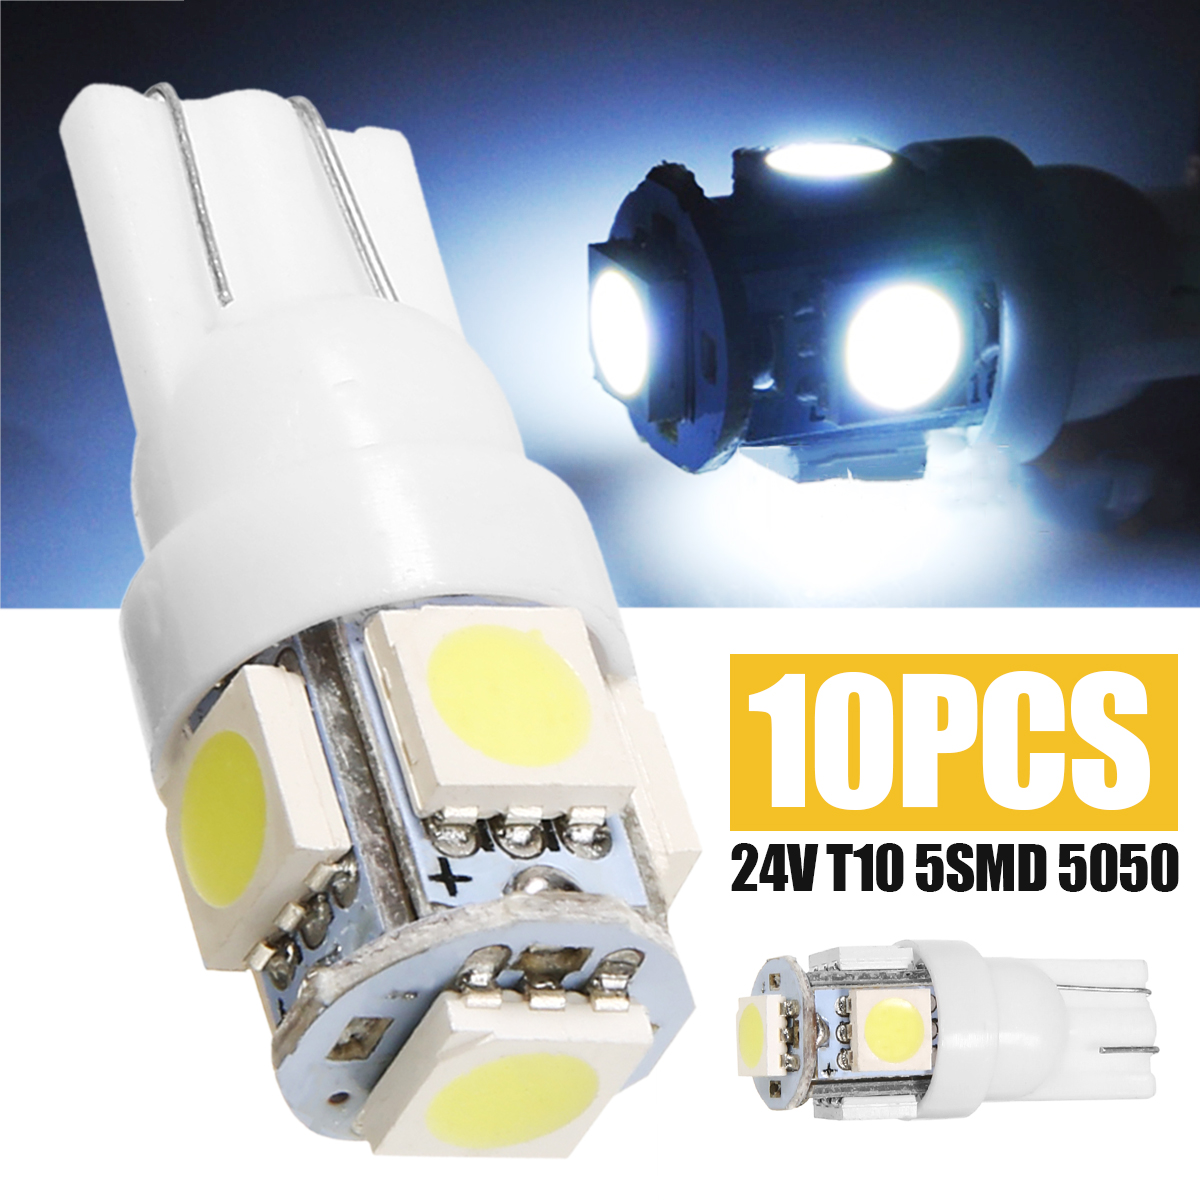 Car Light Source 10pcs 24V T10 194 147 W5W Width Reading Light 5SMD LED T10 5050 License Plate Light White Bulb